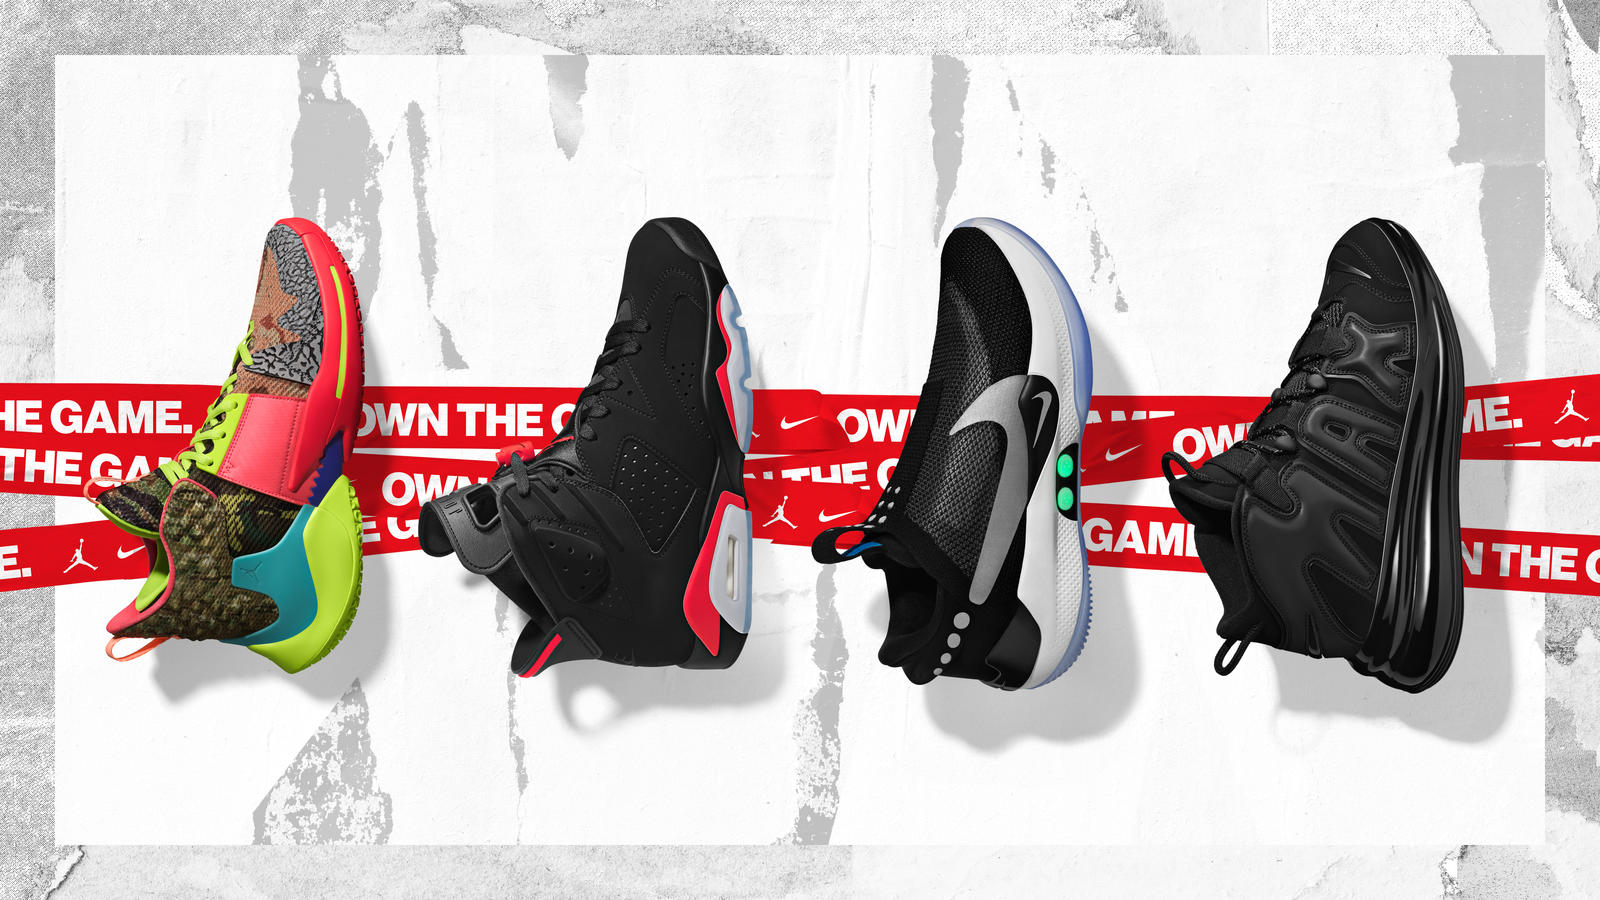 Collection 2019 All KicksNike Sa Pour Dévoile Nba Star Game Le derCBox